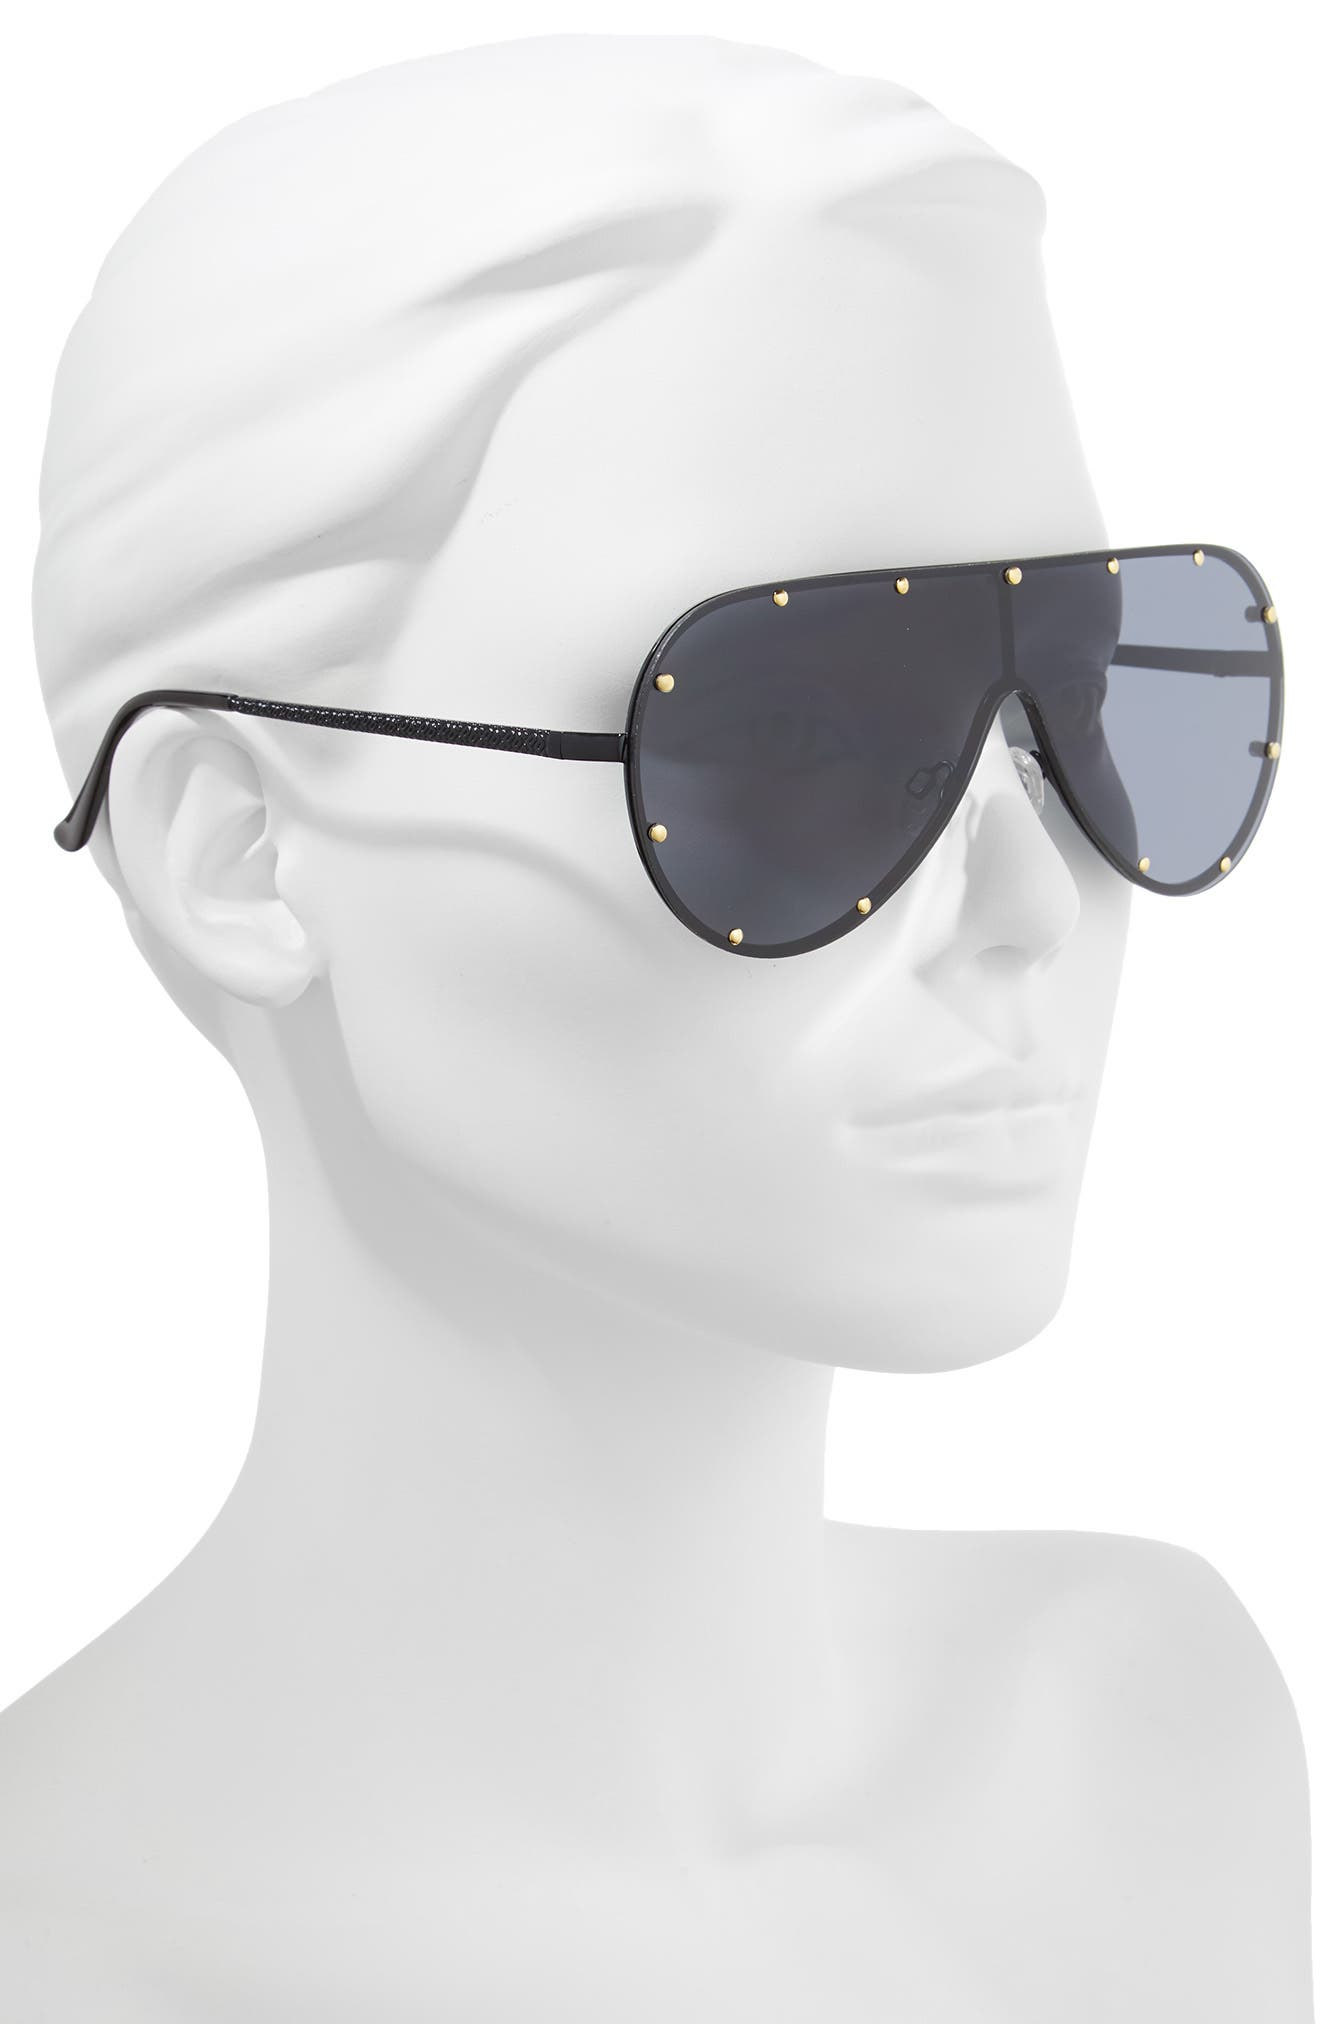 65mm Studded Shield Sunglasses,                             Alternate thumbnail 2, color,                             Black